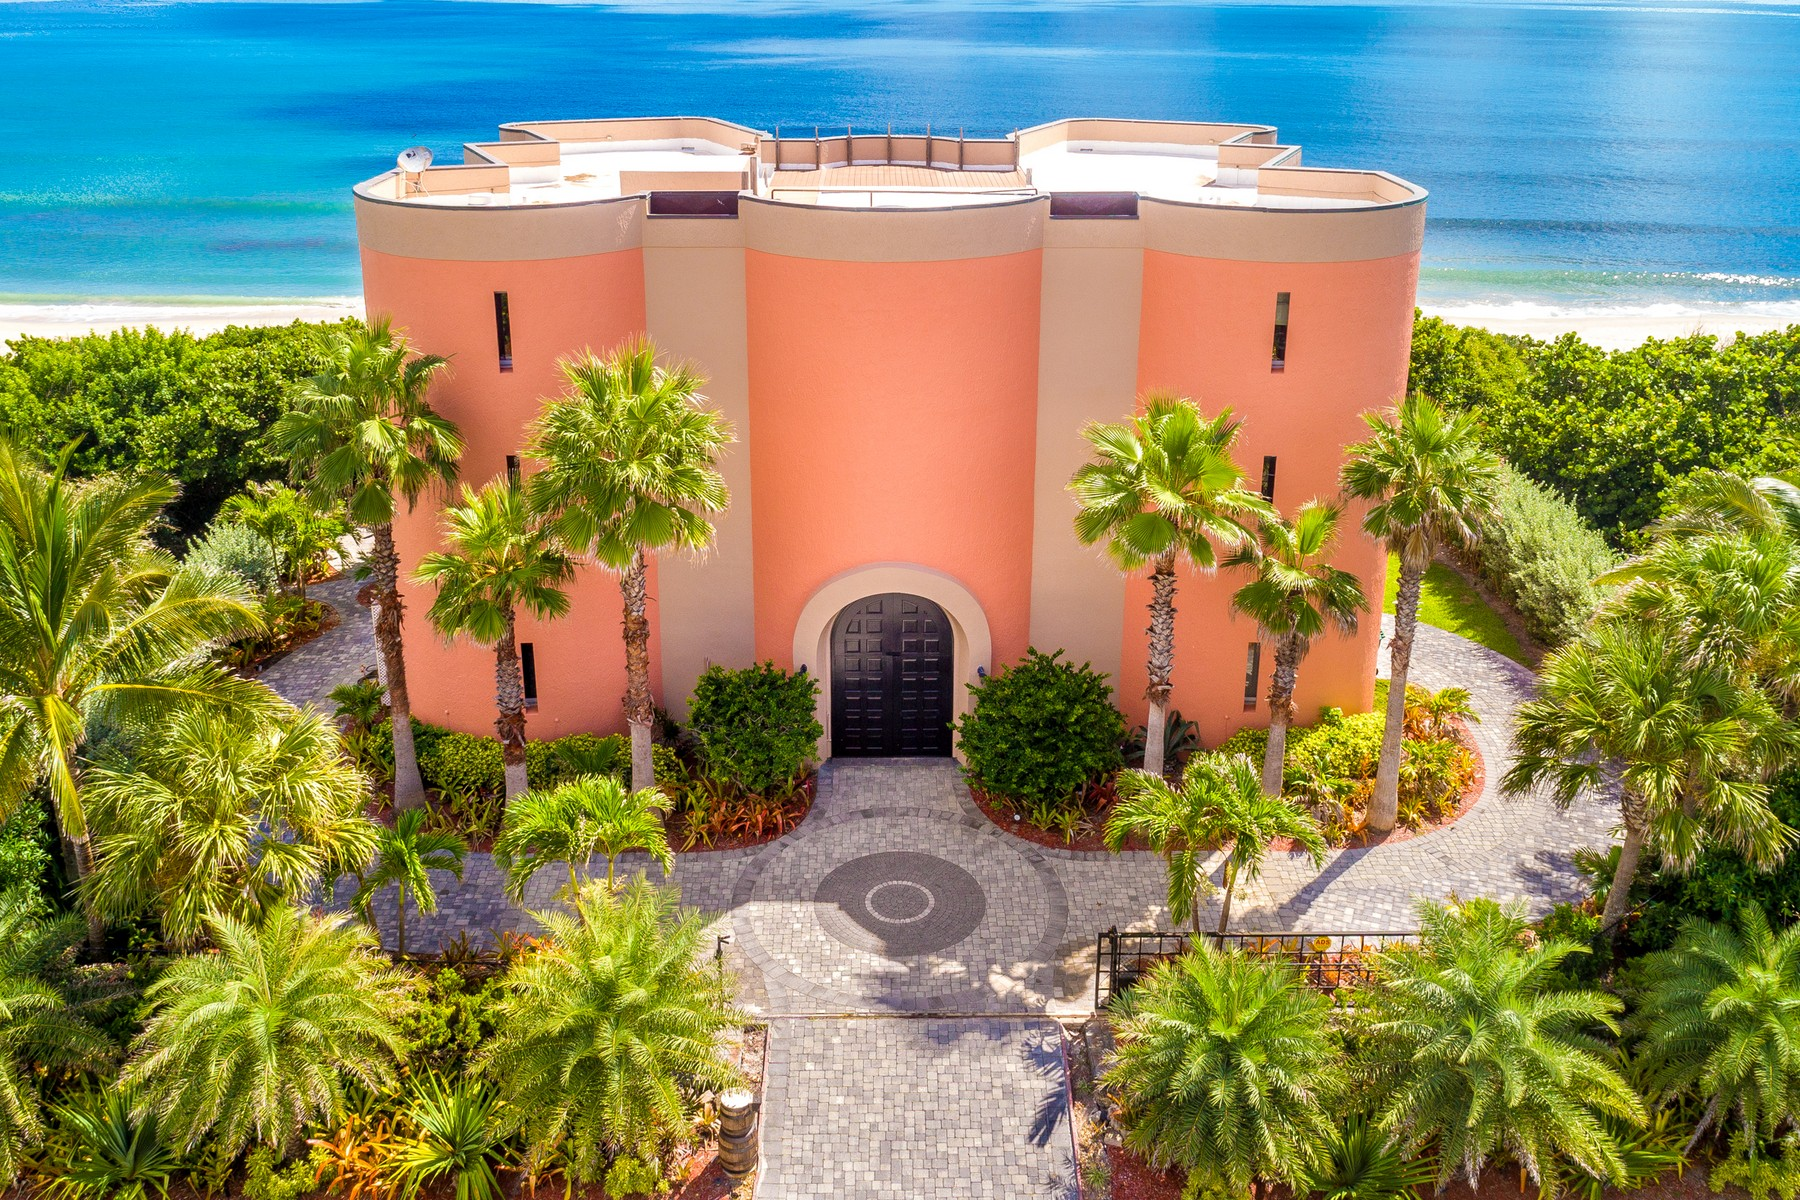 Property для того Продажа на Oceanfront Castle! 7525 Highway A1A Melbourne Beach, Флорида 32951 Соединенные Штаты